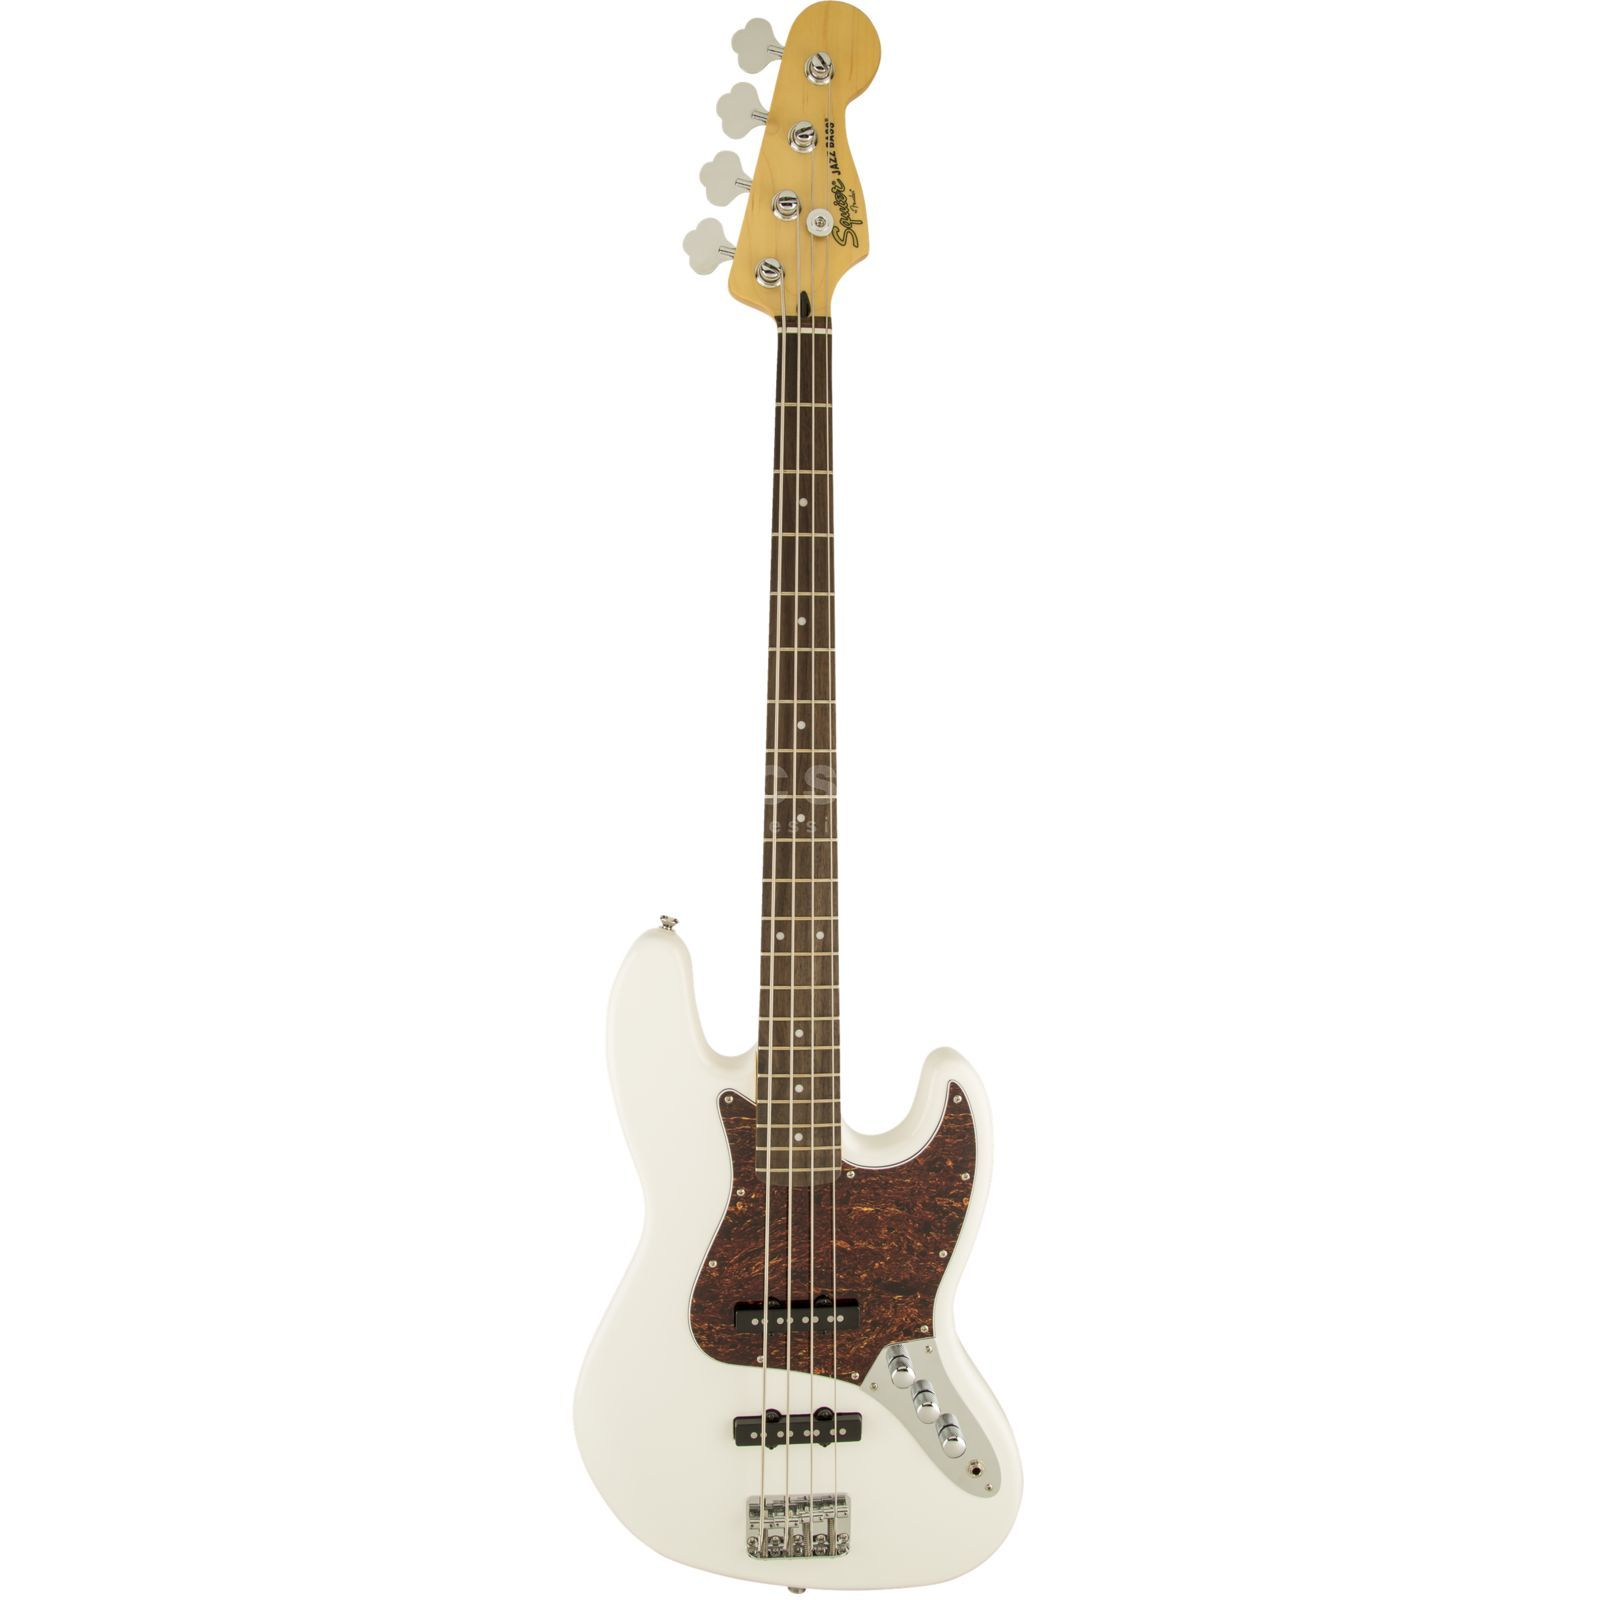 Fender Squier Vintage Modified Jazz Bass Olympic White Product Image